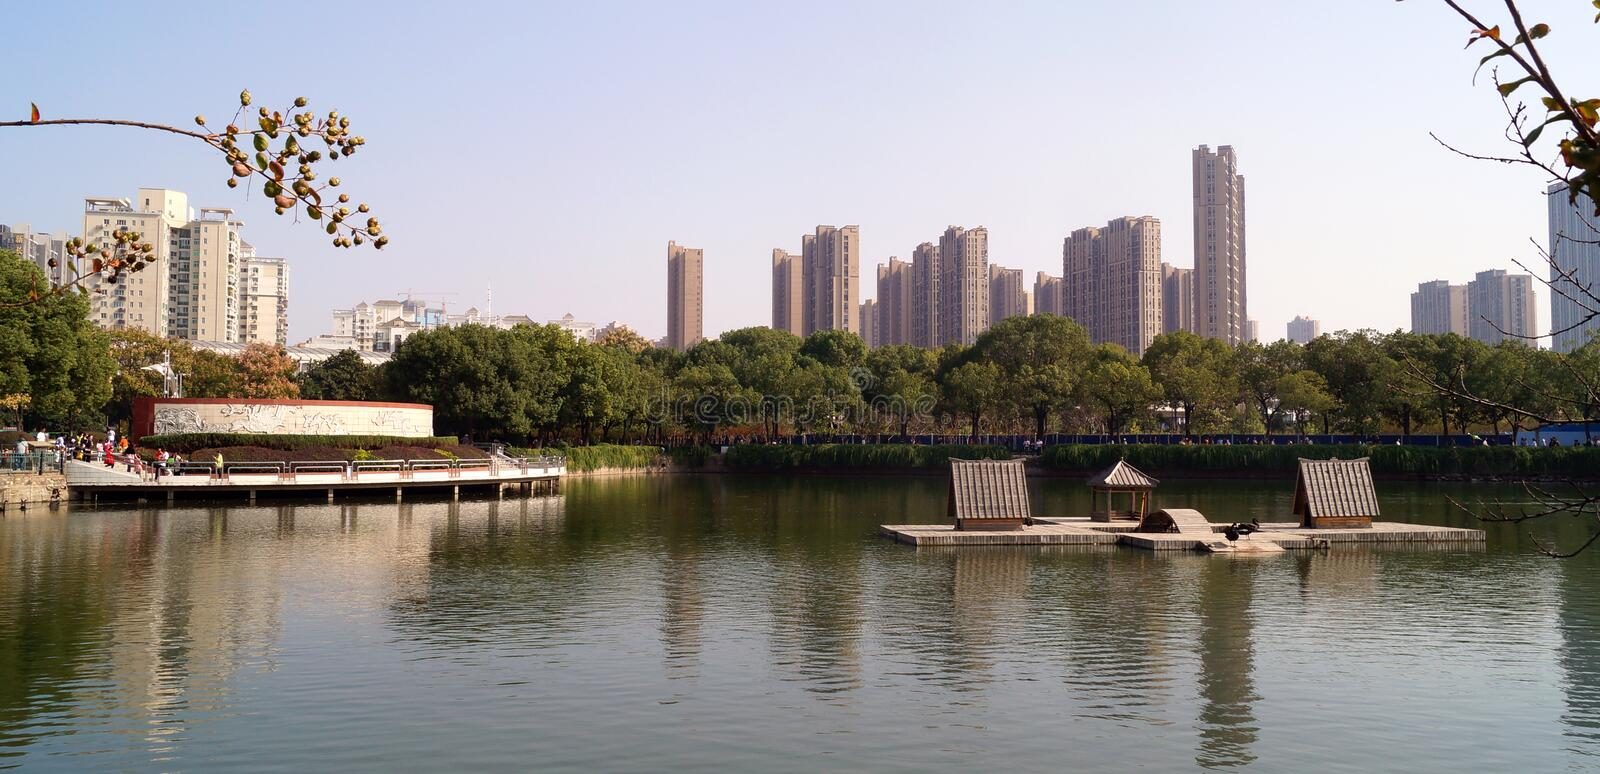 Wuhan zoo China. Panoramic view of some part of wuhan city, view from the zoo, green trees in a park side to tall buildings a small lake and and some houses royalty free stock image